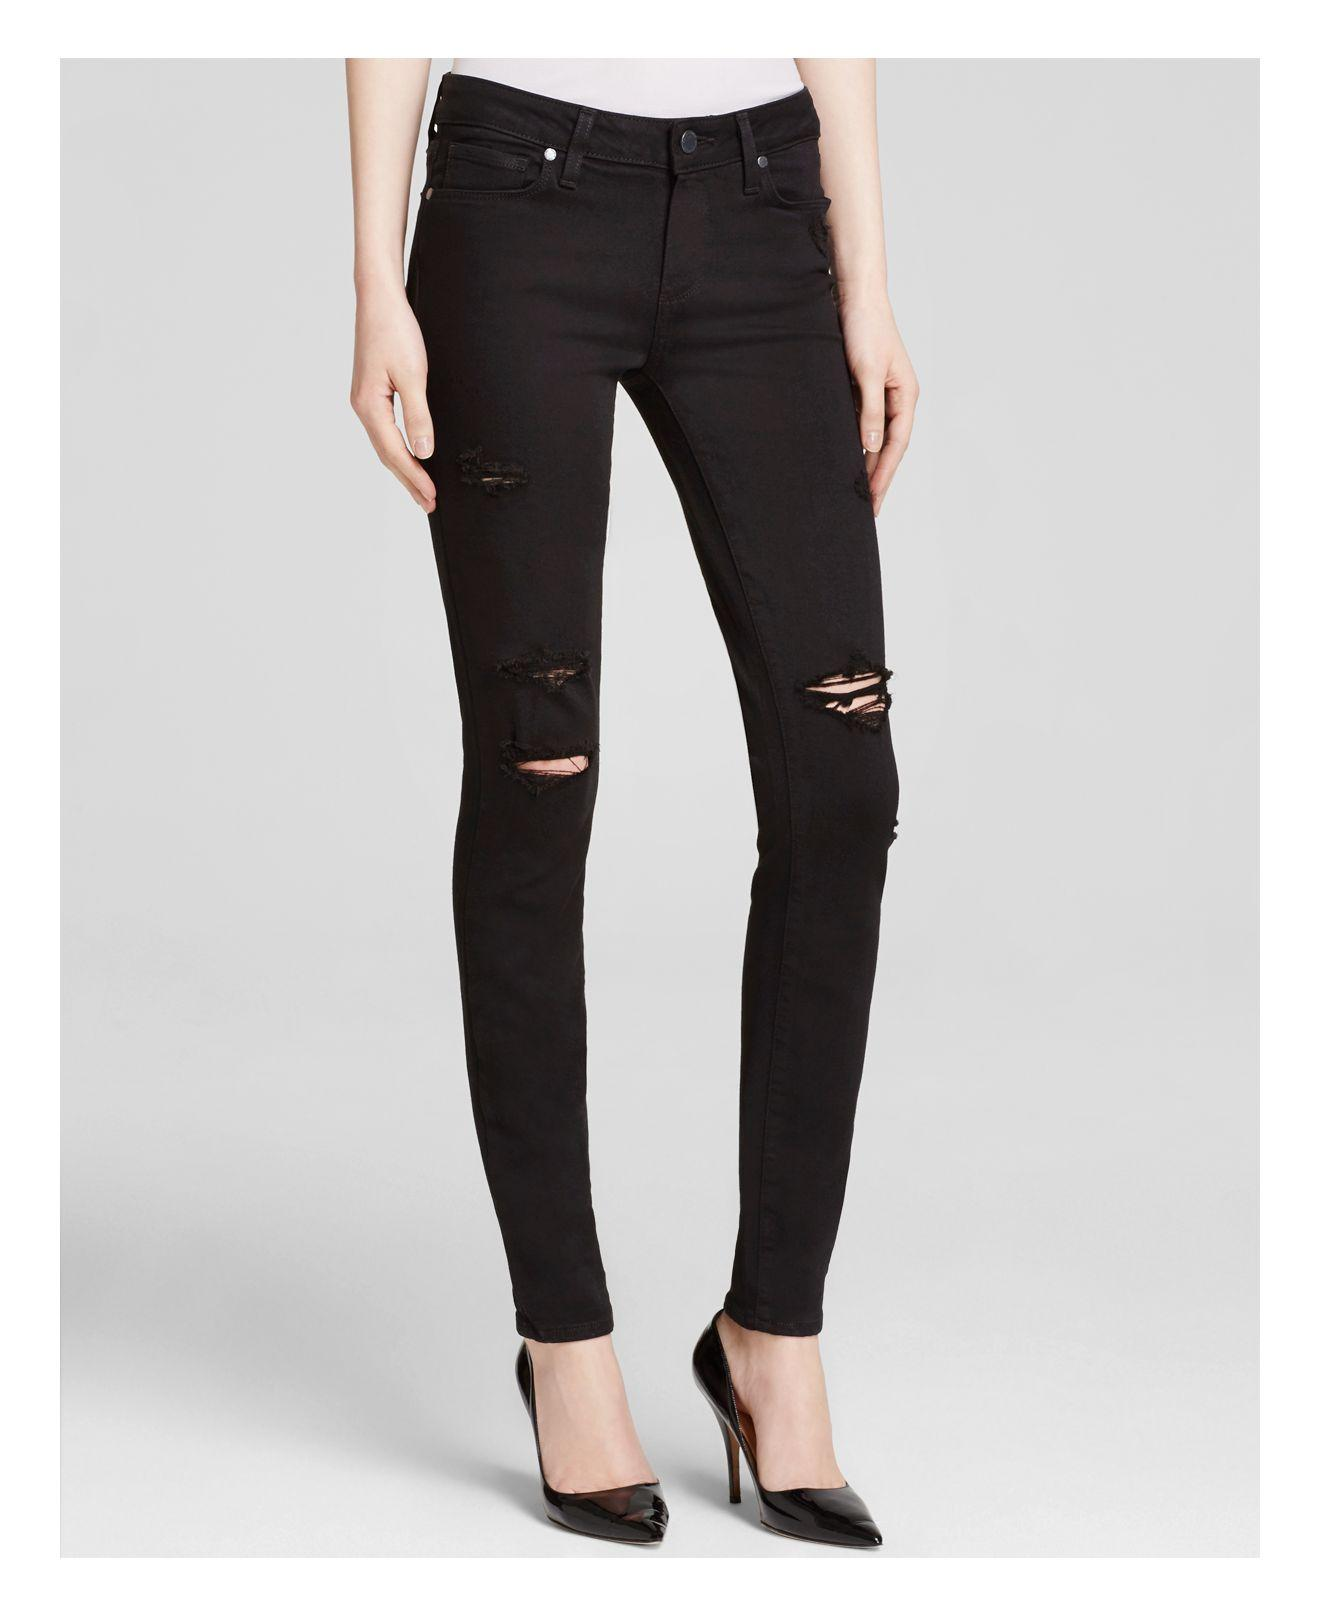 Paige Denim Destructed Verdugo Transcend Jeans In Black Shadow in ...